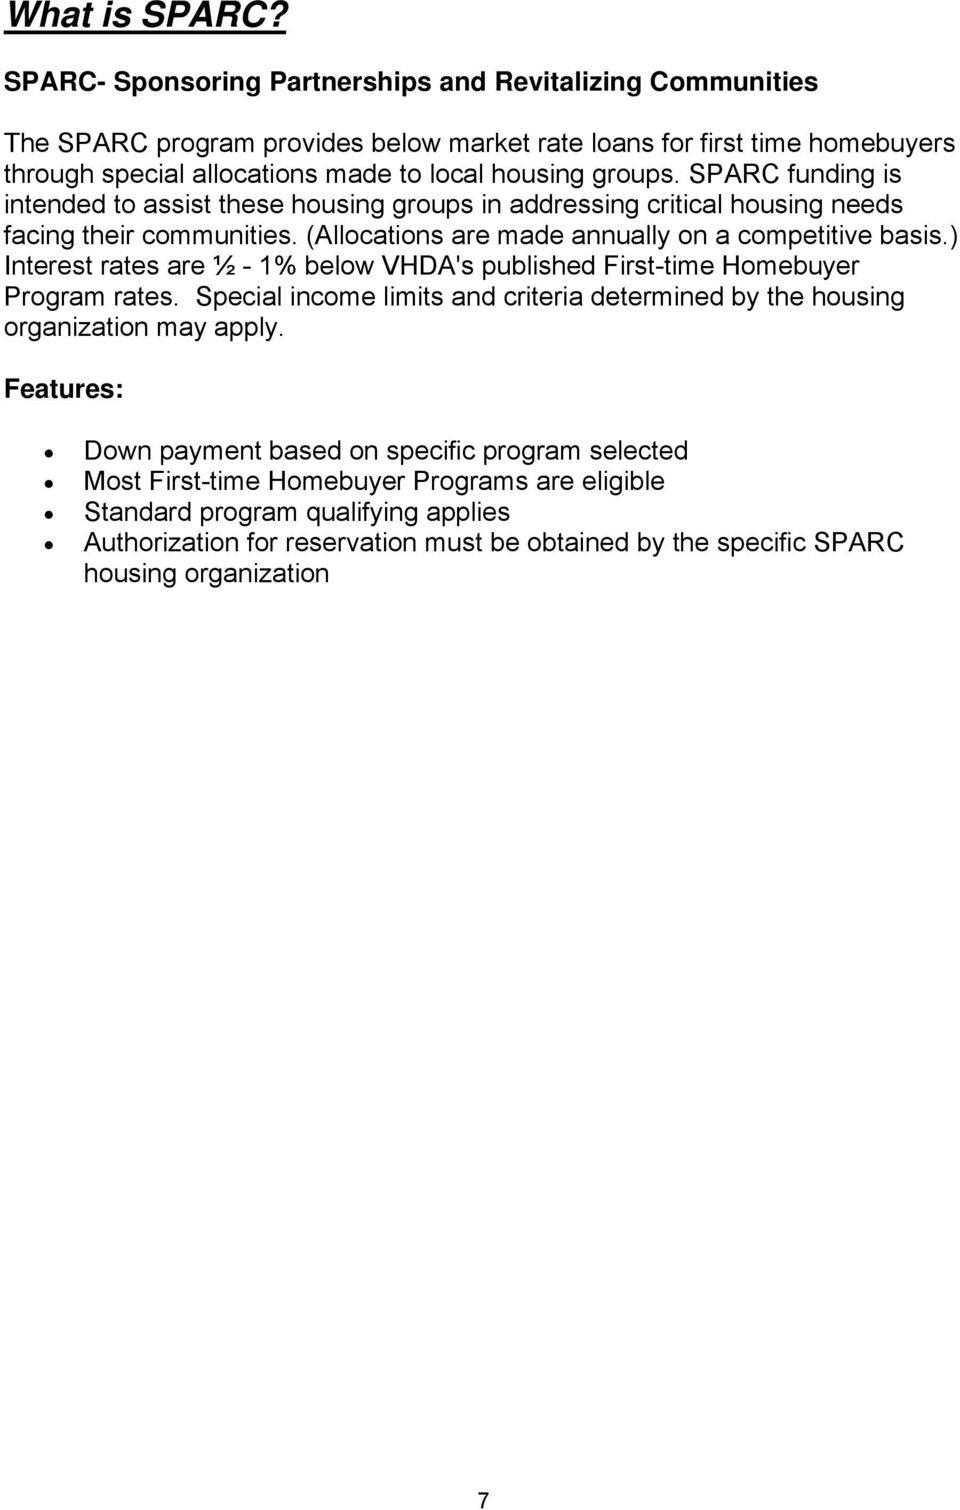 SPARC funding is intended to assist these housing groups in addressing critical housing needs facing their communities. (Allocations are made annually on a competitive basis.